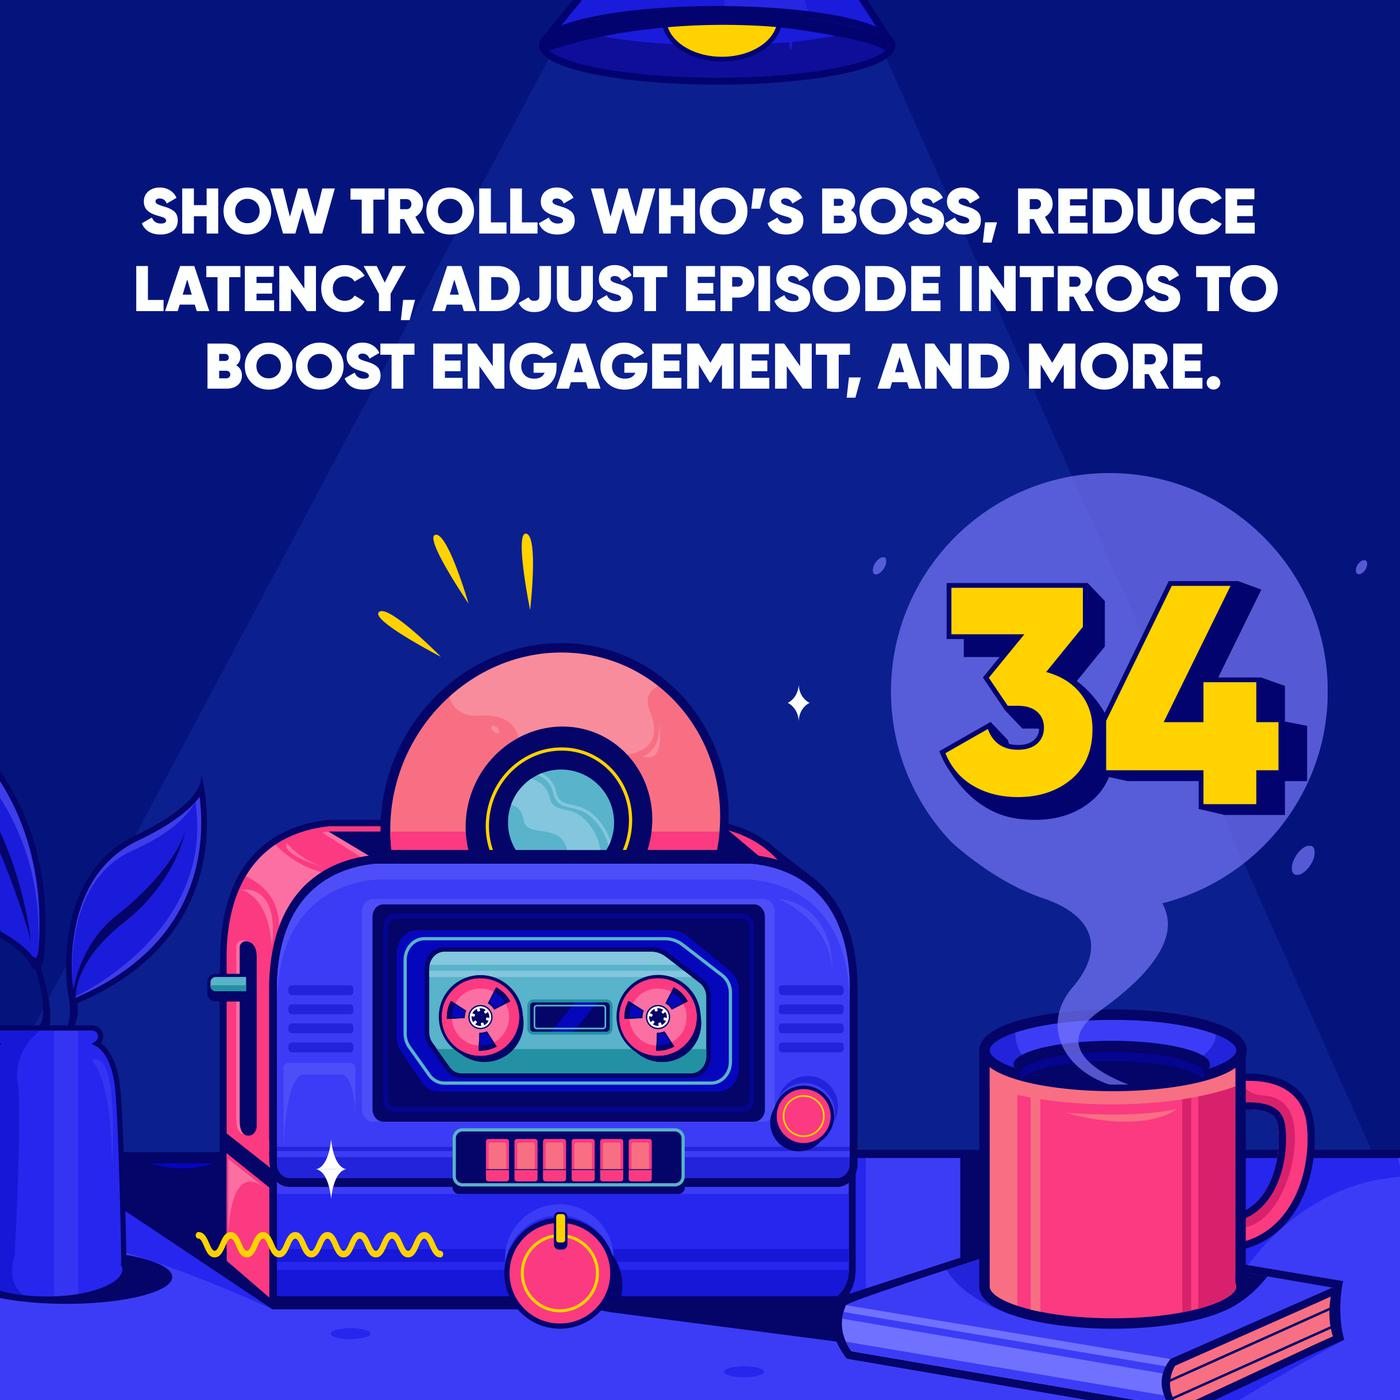 Show Trolls who's Boss, Reduce Latency, Adjust Episode Intros to Boost Engagement, and More.